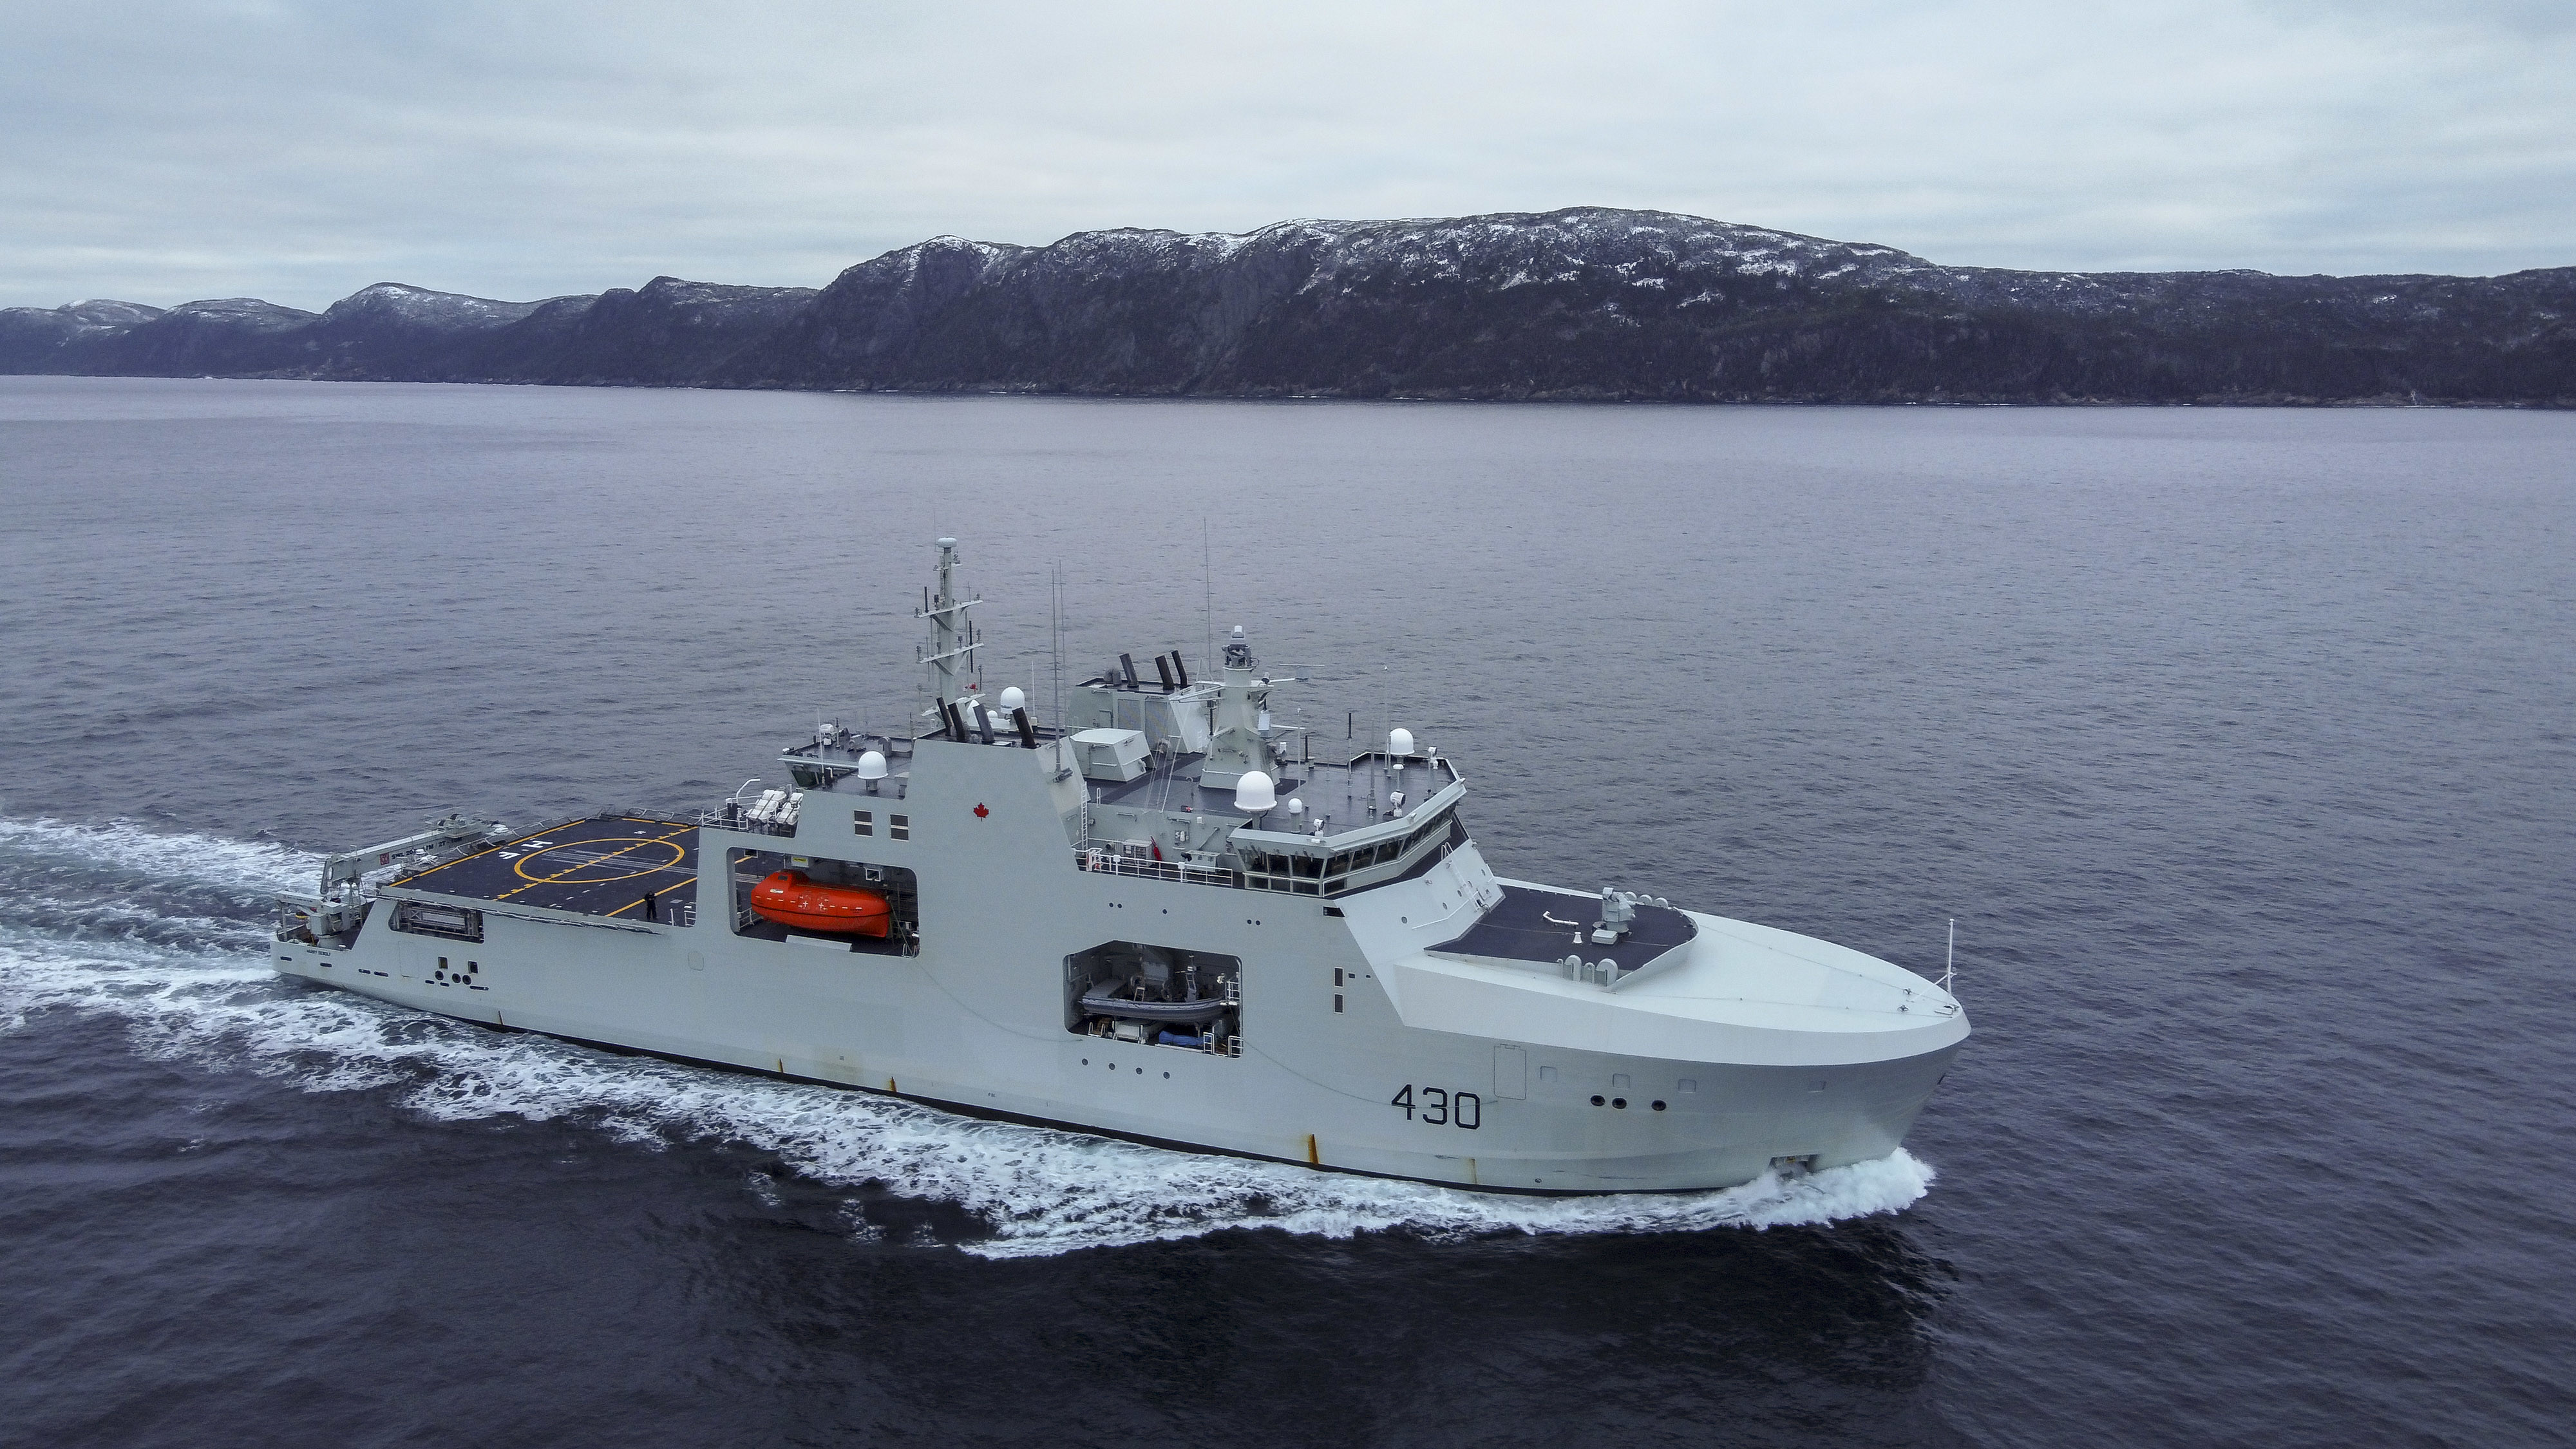 HMCS Harry DeWolf sails in Conception Bay, N.L.